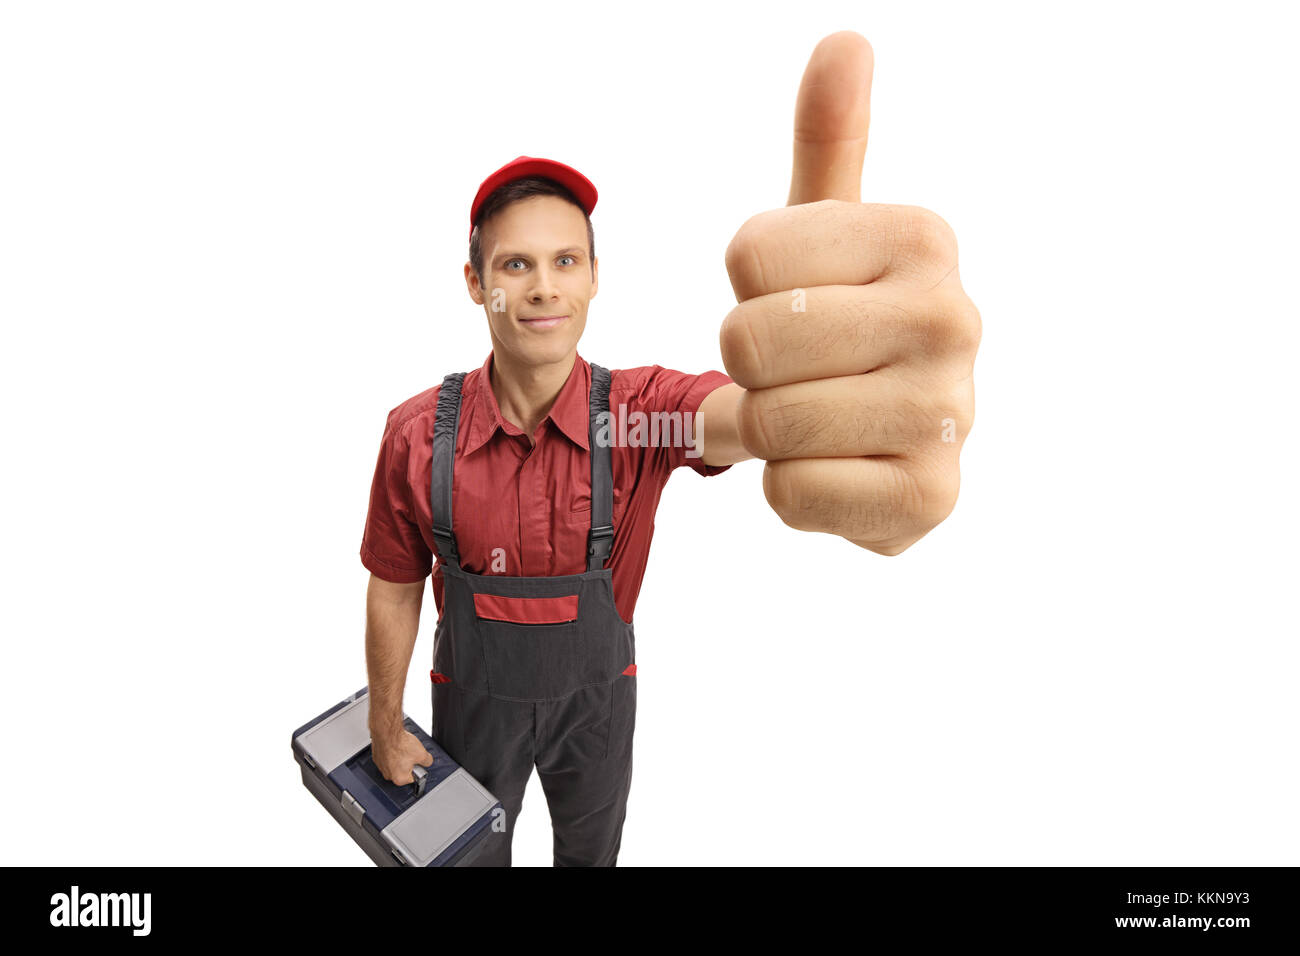 Serviceman with a toolbox making a thumb up gesture isolated on white background - Stock Image